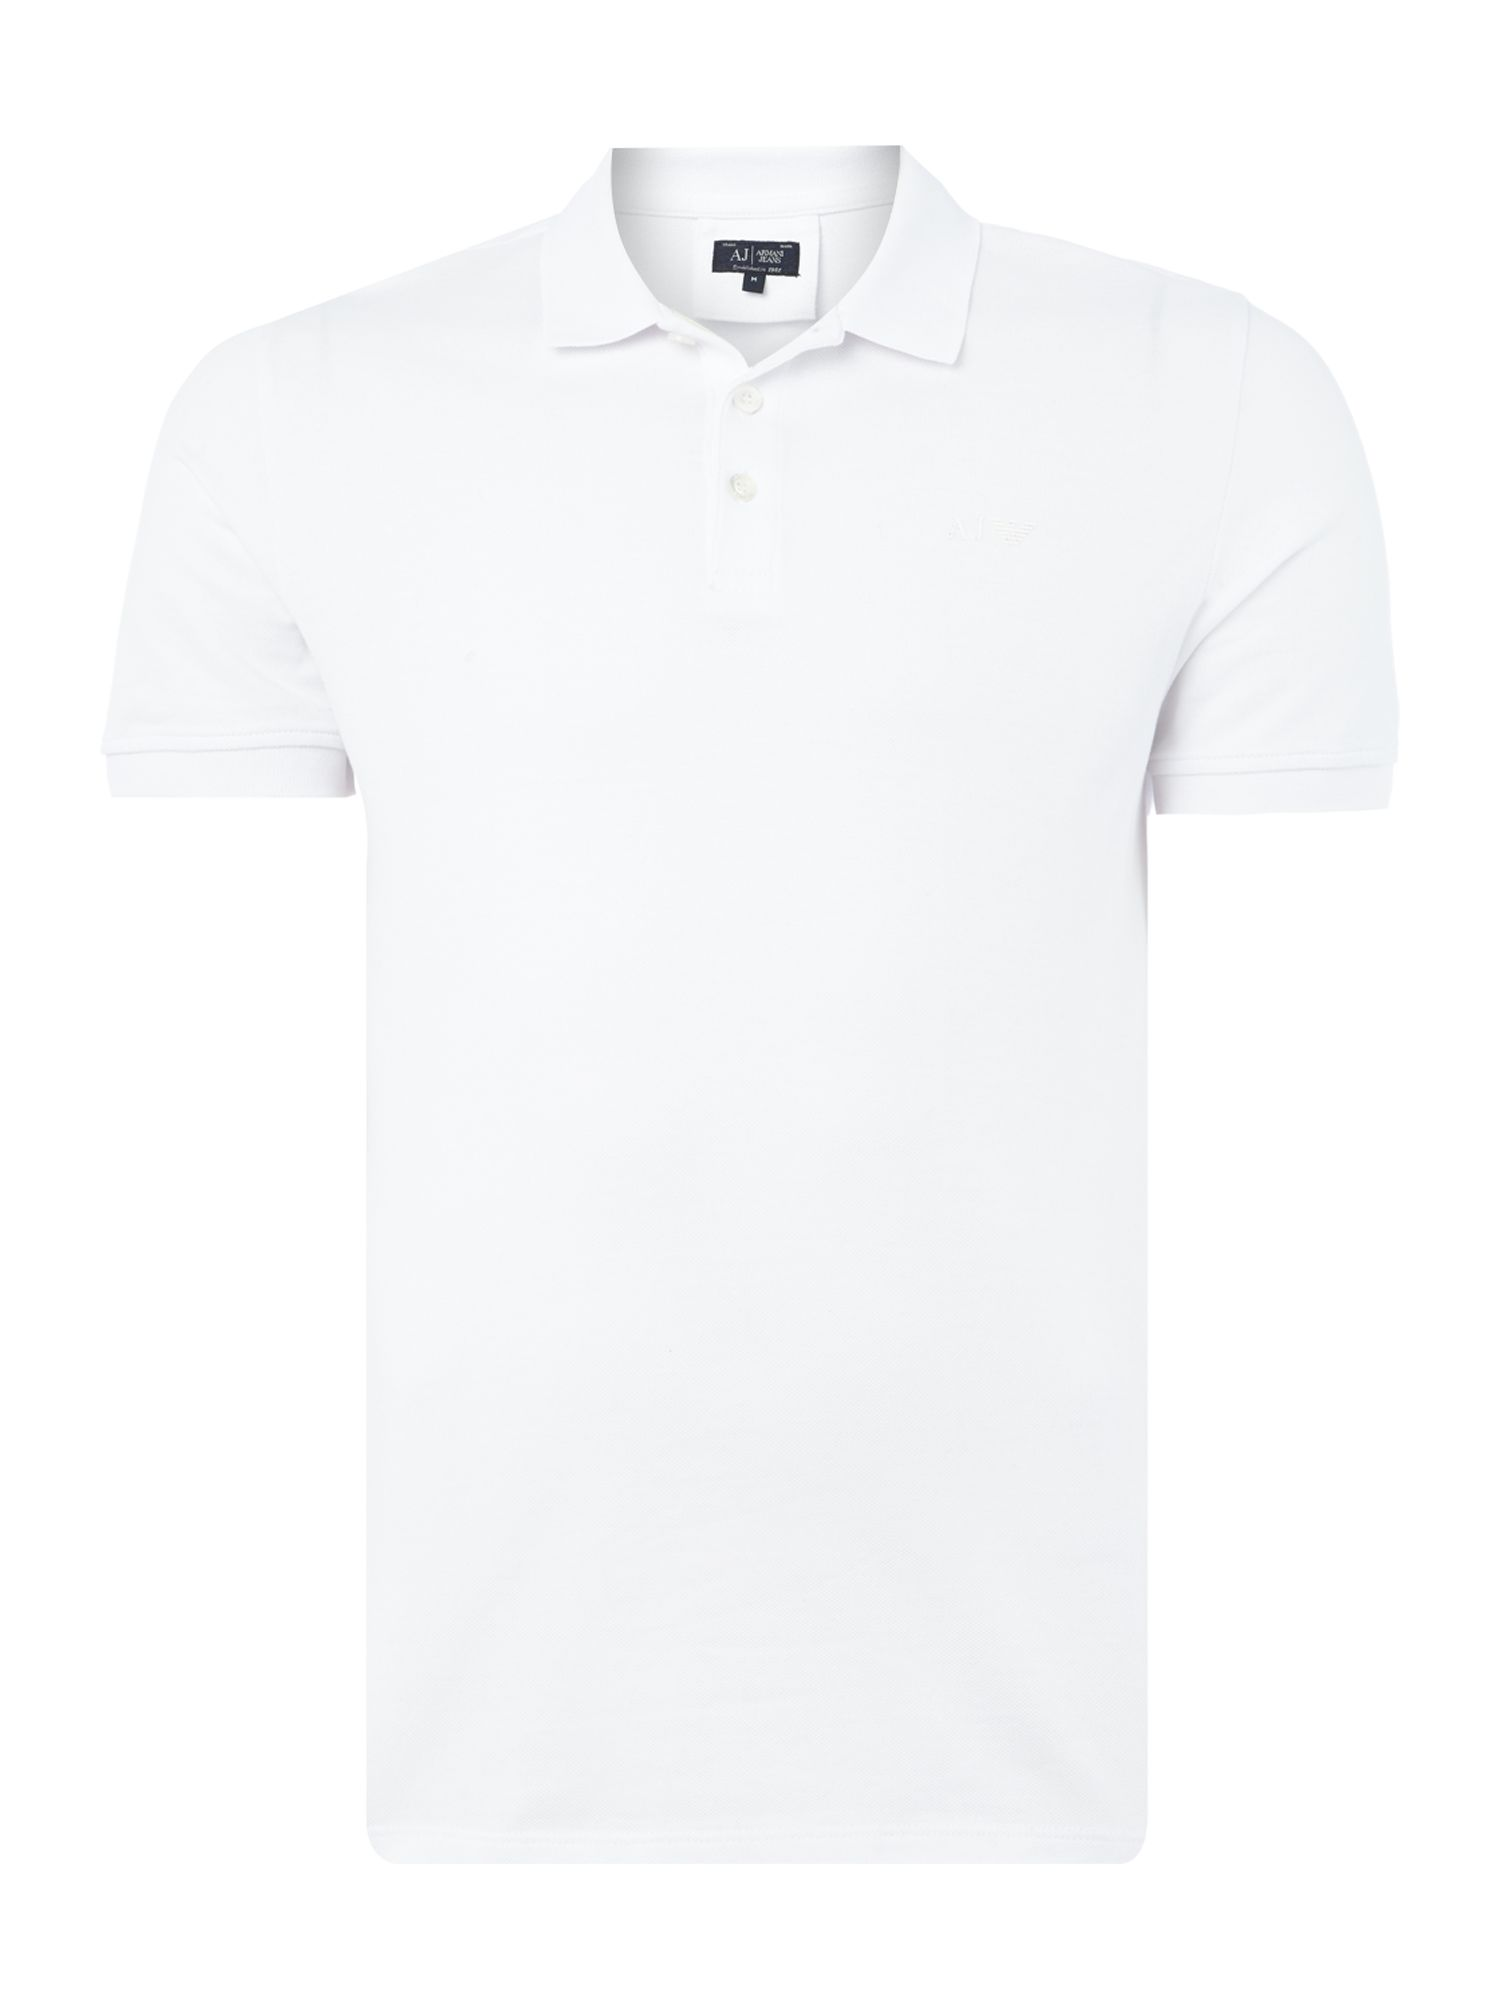 Men's Armani Jeans Regular fit short sleeve logo polo shirt, White